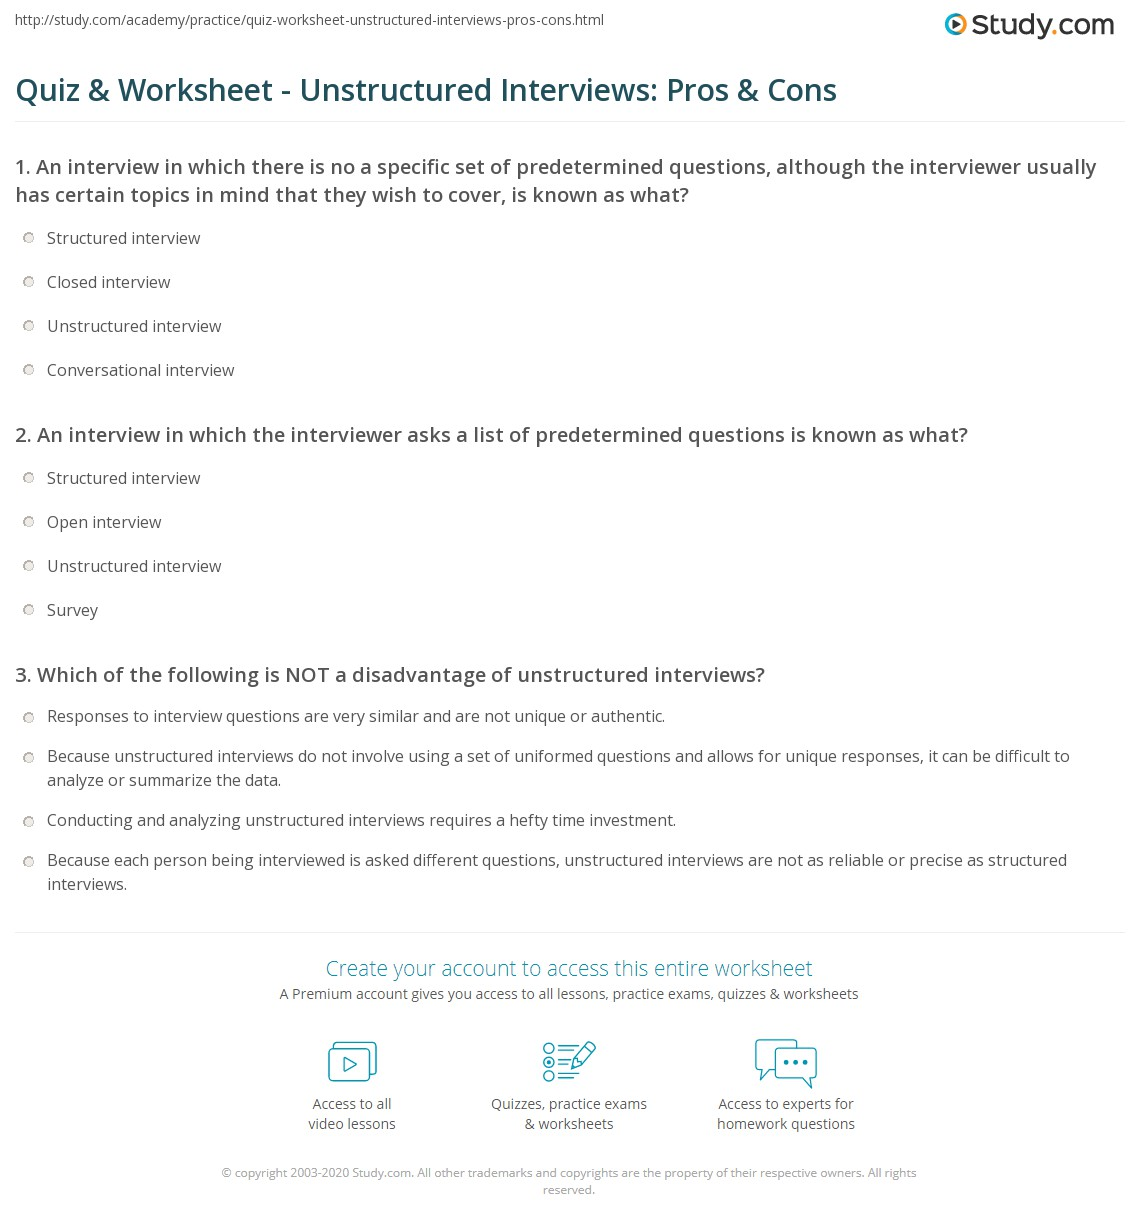 quiz worksheet unstructured interviews pros cons com an interview in which the interviewer asks a list of predetermined questions is known as what structured interview